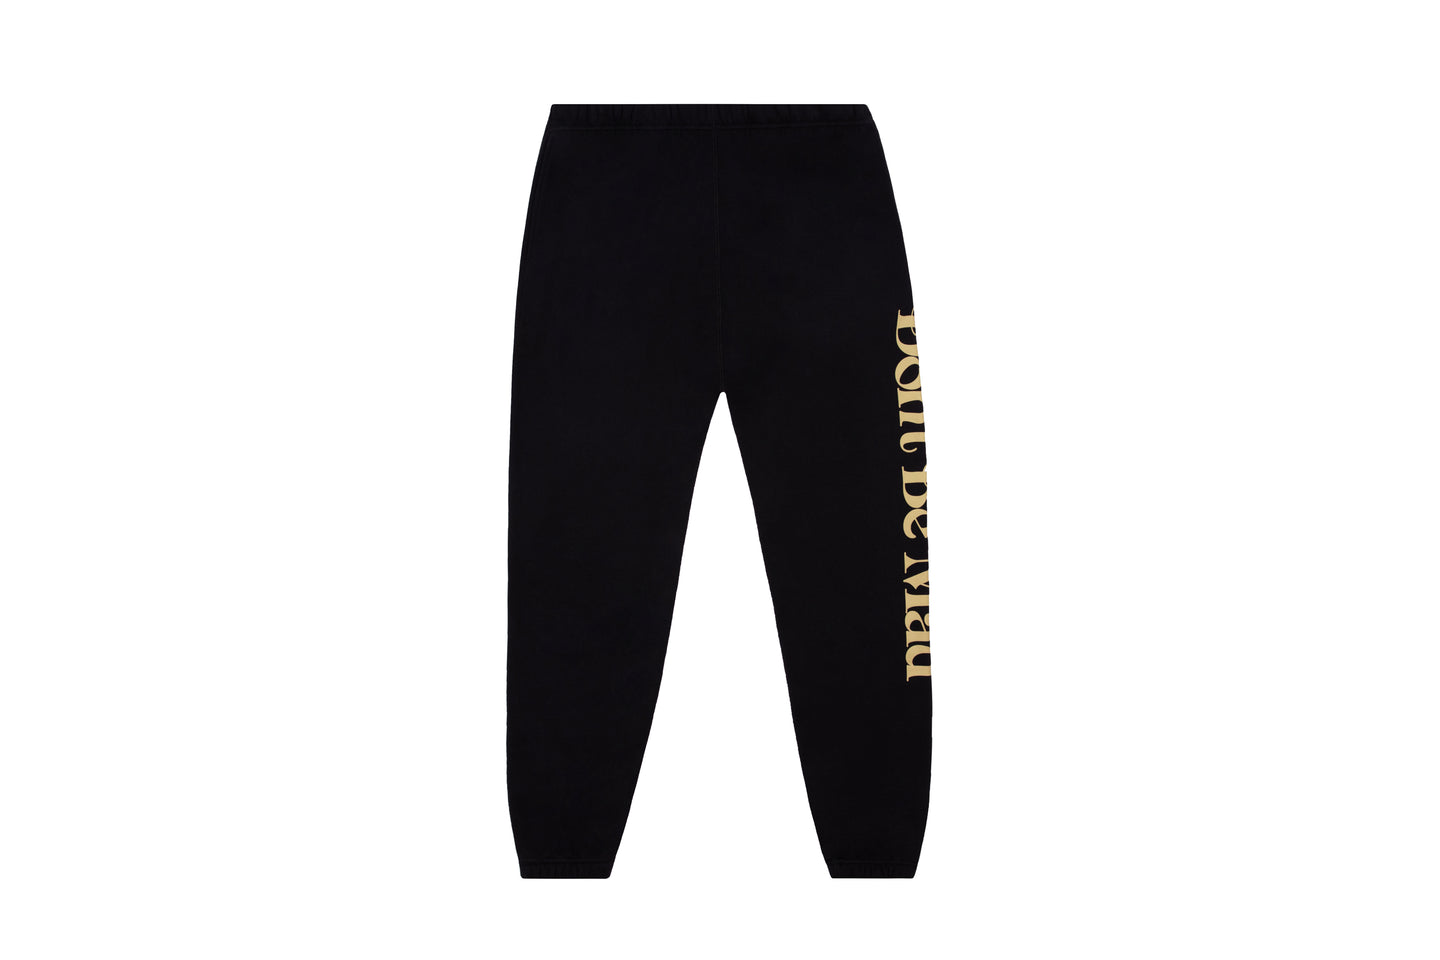 Antique Logo Sweatpants - Black